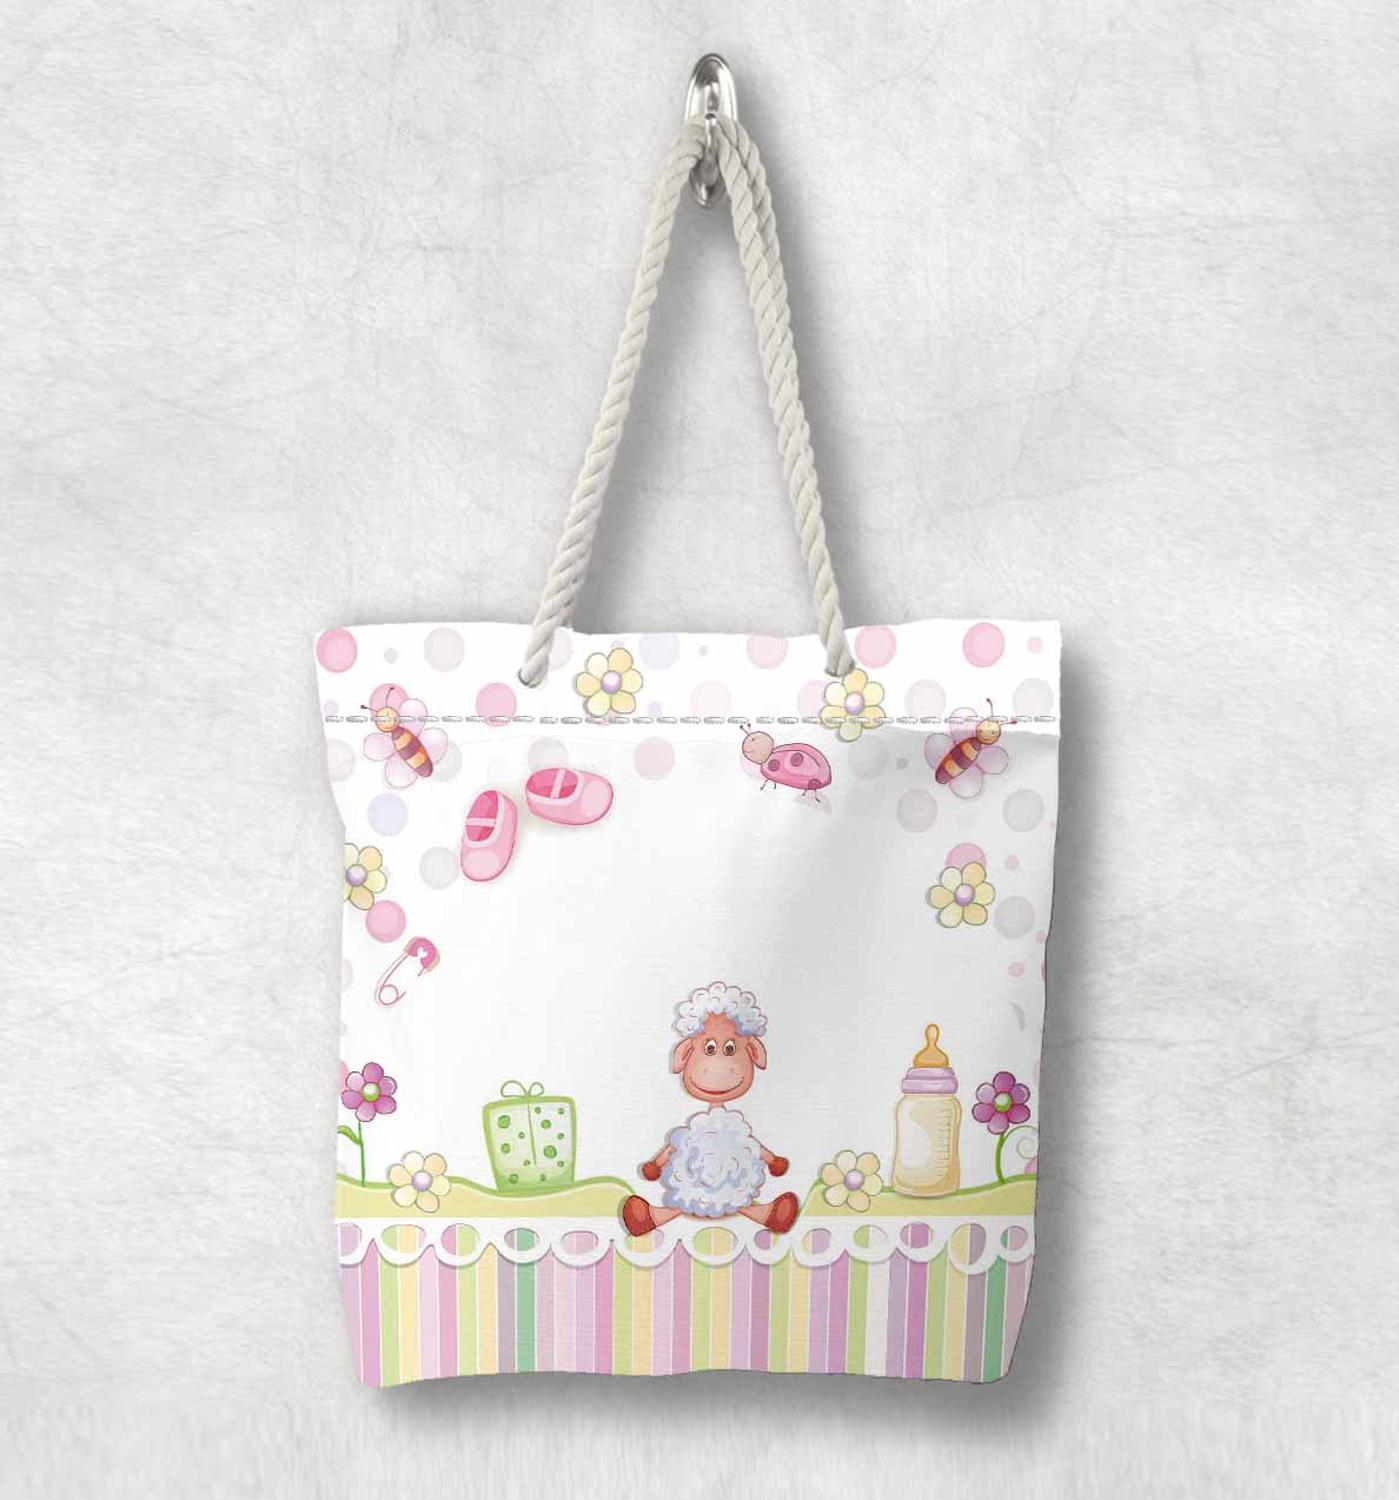 Else Little Sheep Funny Baby Lamp Pink Boots Fashion White Rope Handle Canvas Bag  Cartoon Print Zippered Tote Bag Shoulder Bag